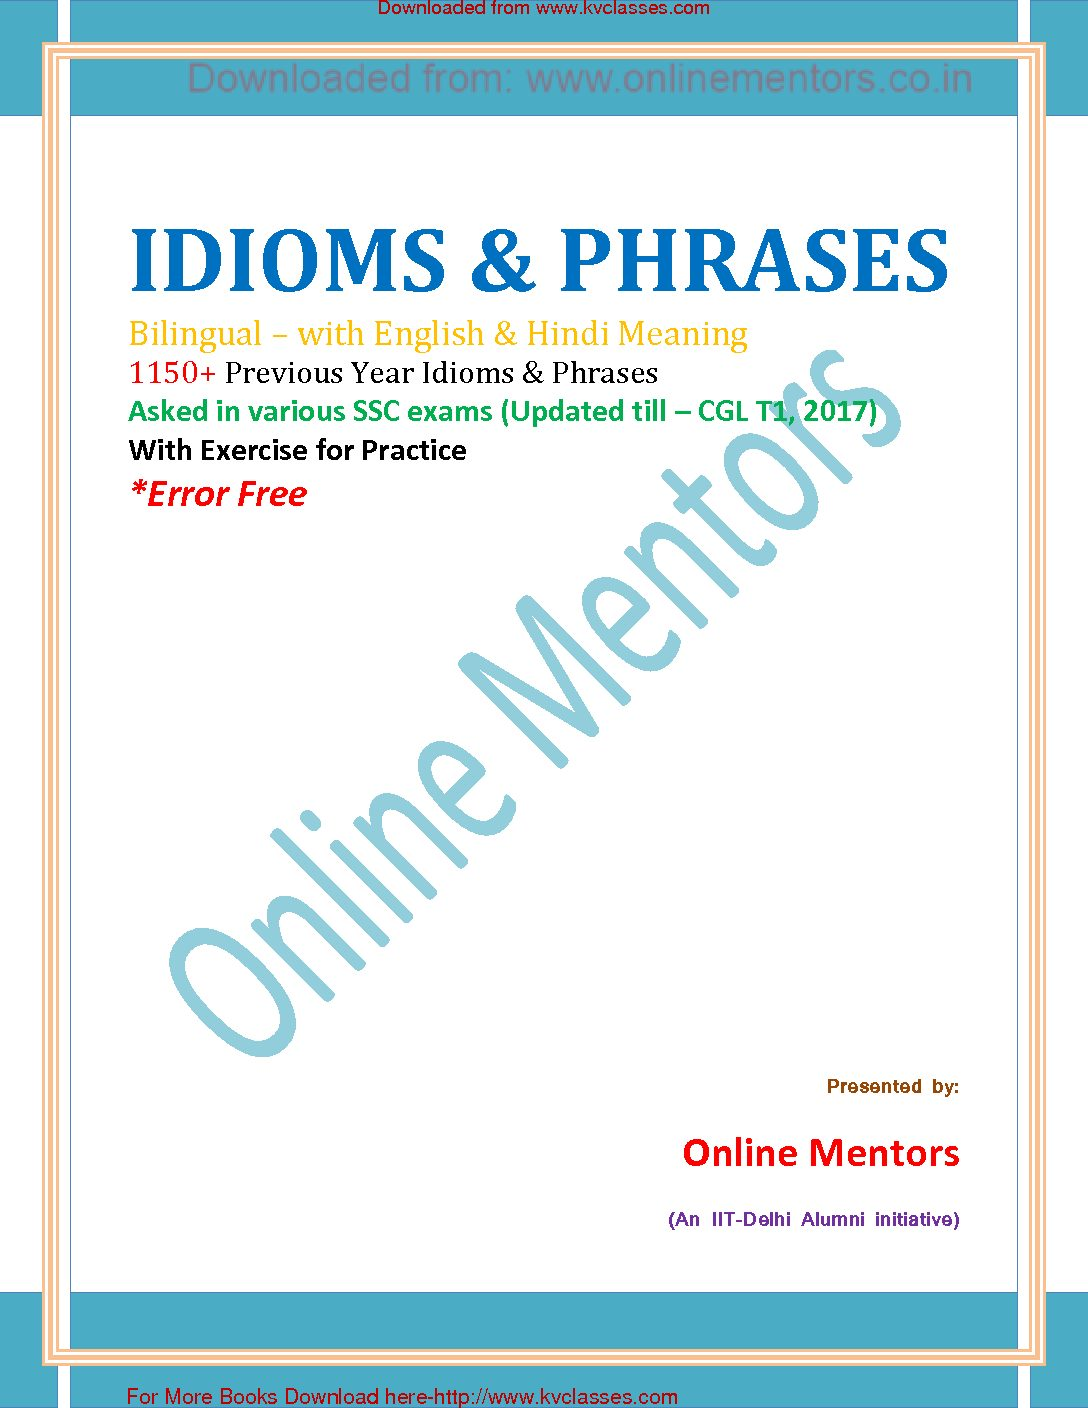 IDIOMS & PHRASES Bilingual – with English & Hindi Meaning 1150+ Previous Year Idioms & Phrases Asked in various SSC exams (Updated till – CGL T1, 2017) PDF Download